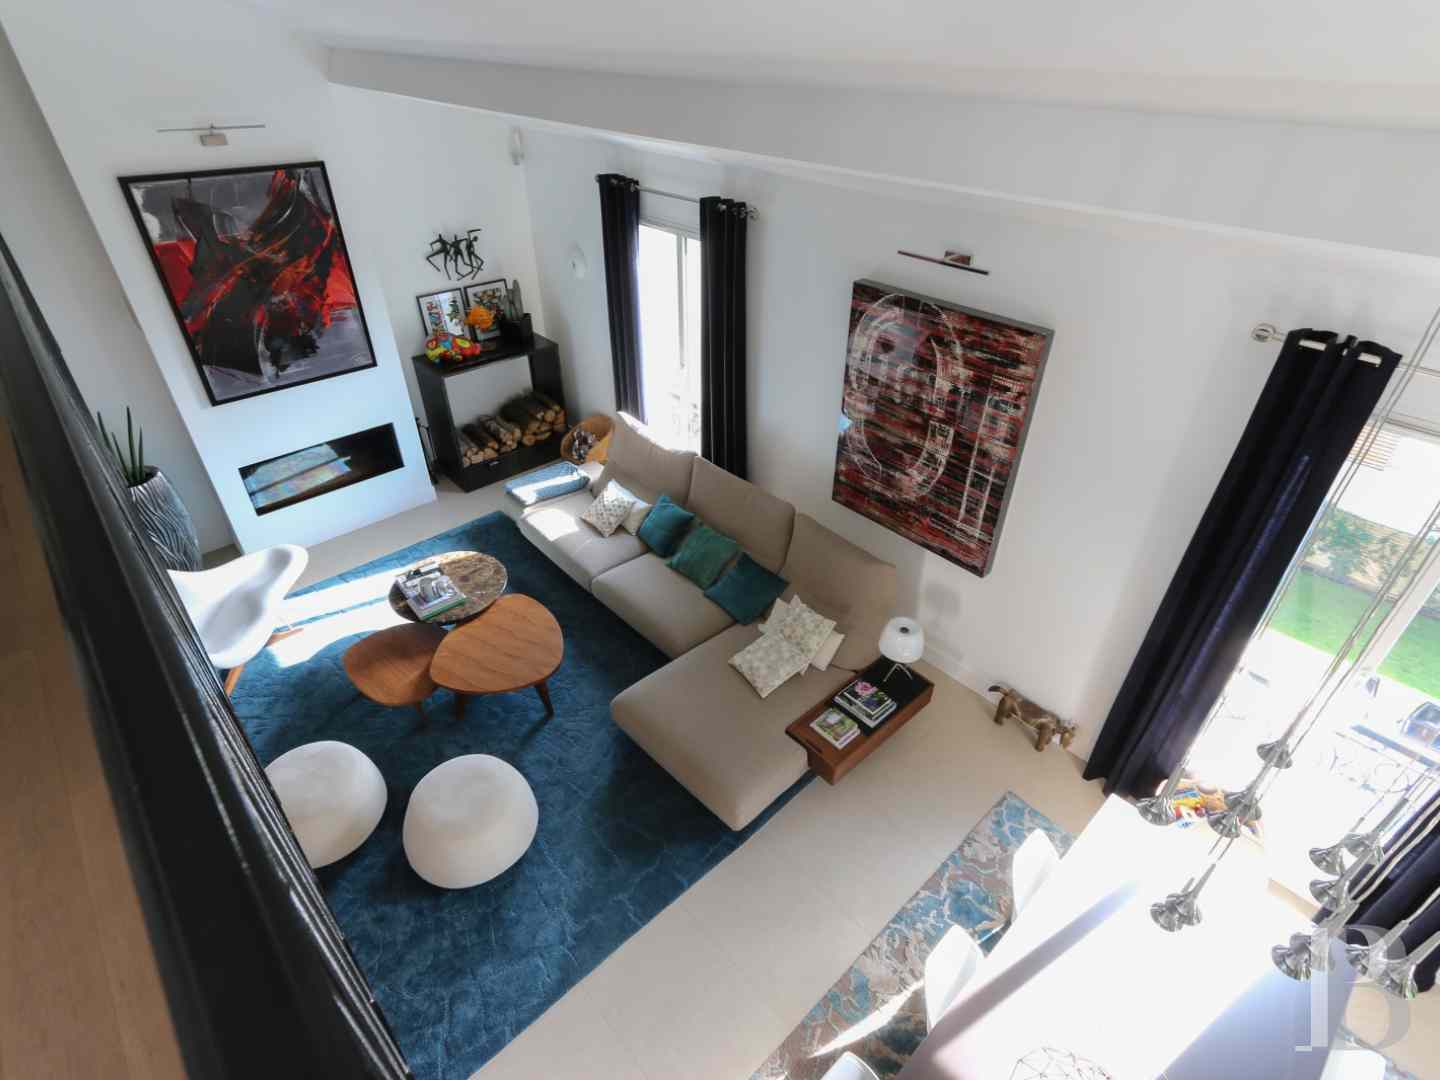 property for sale France paris residences 20th - 6 zoom